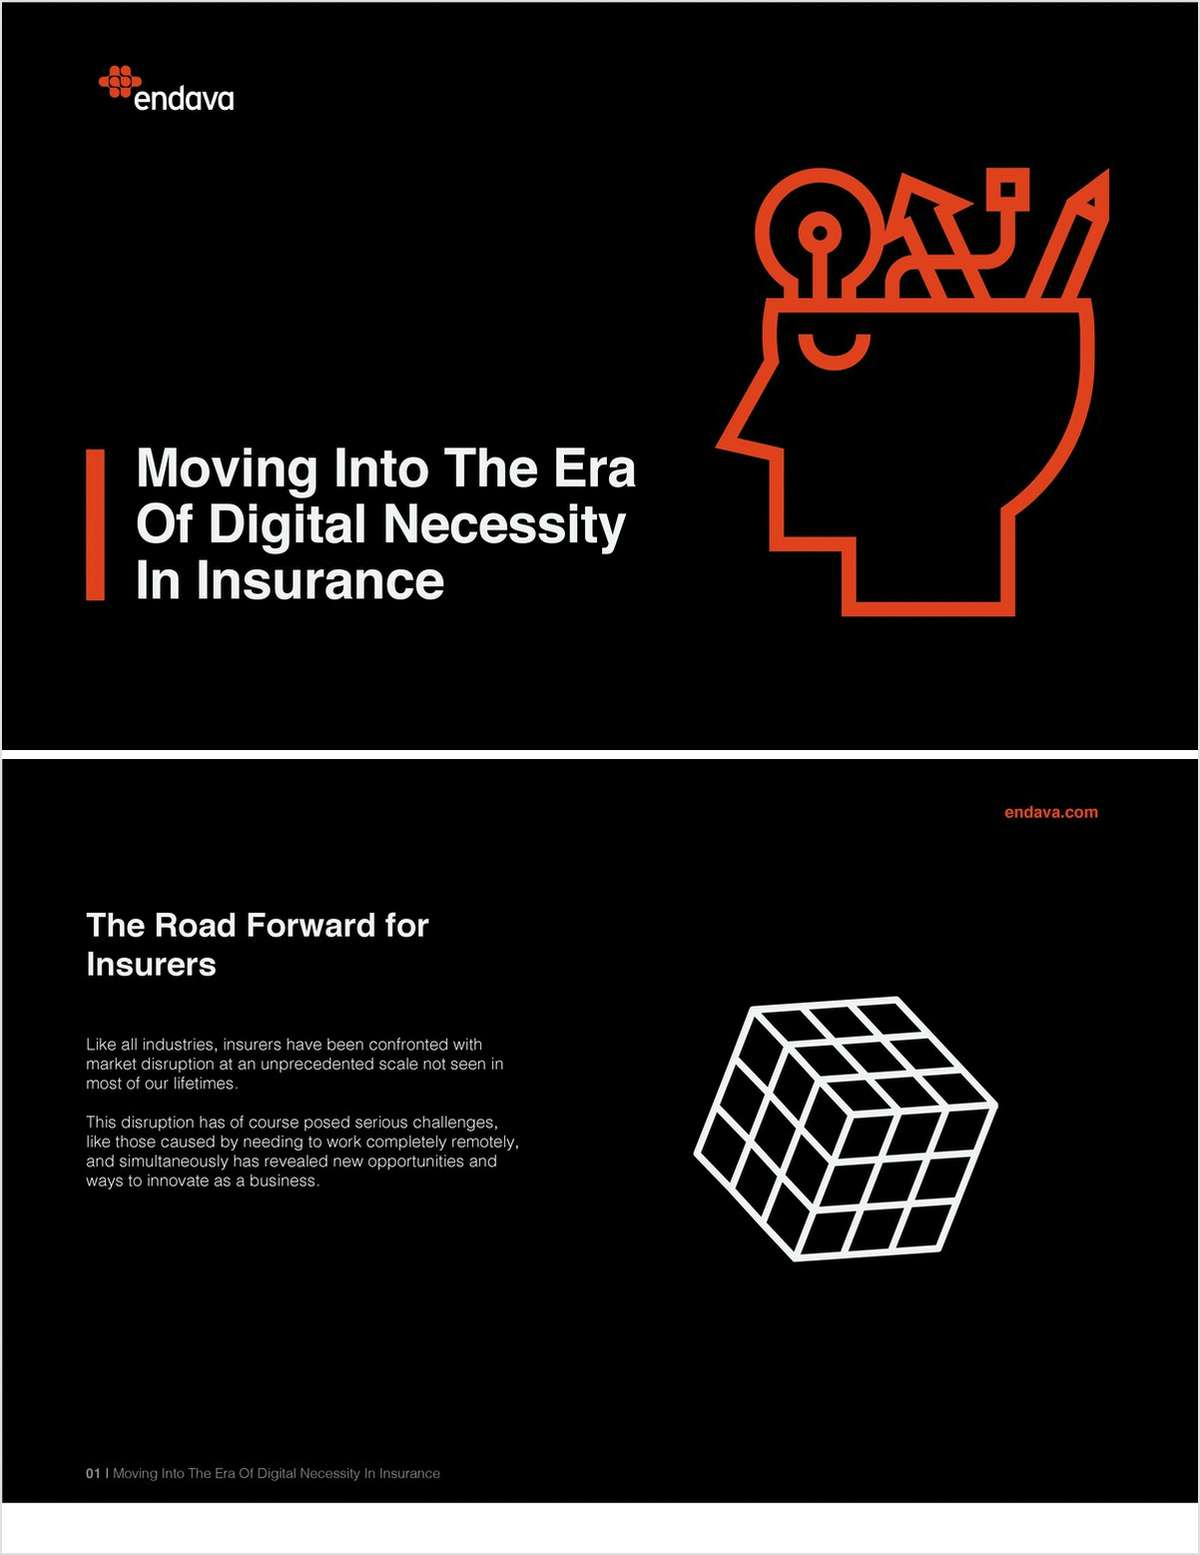 Moving Into The Era Of Digital Necessity In Insurance